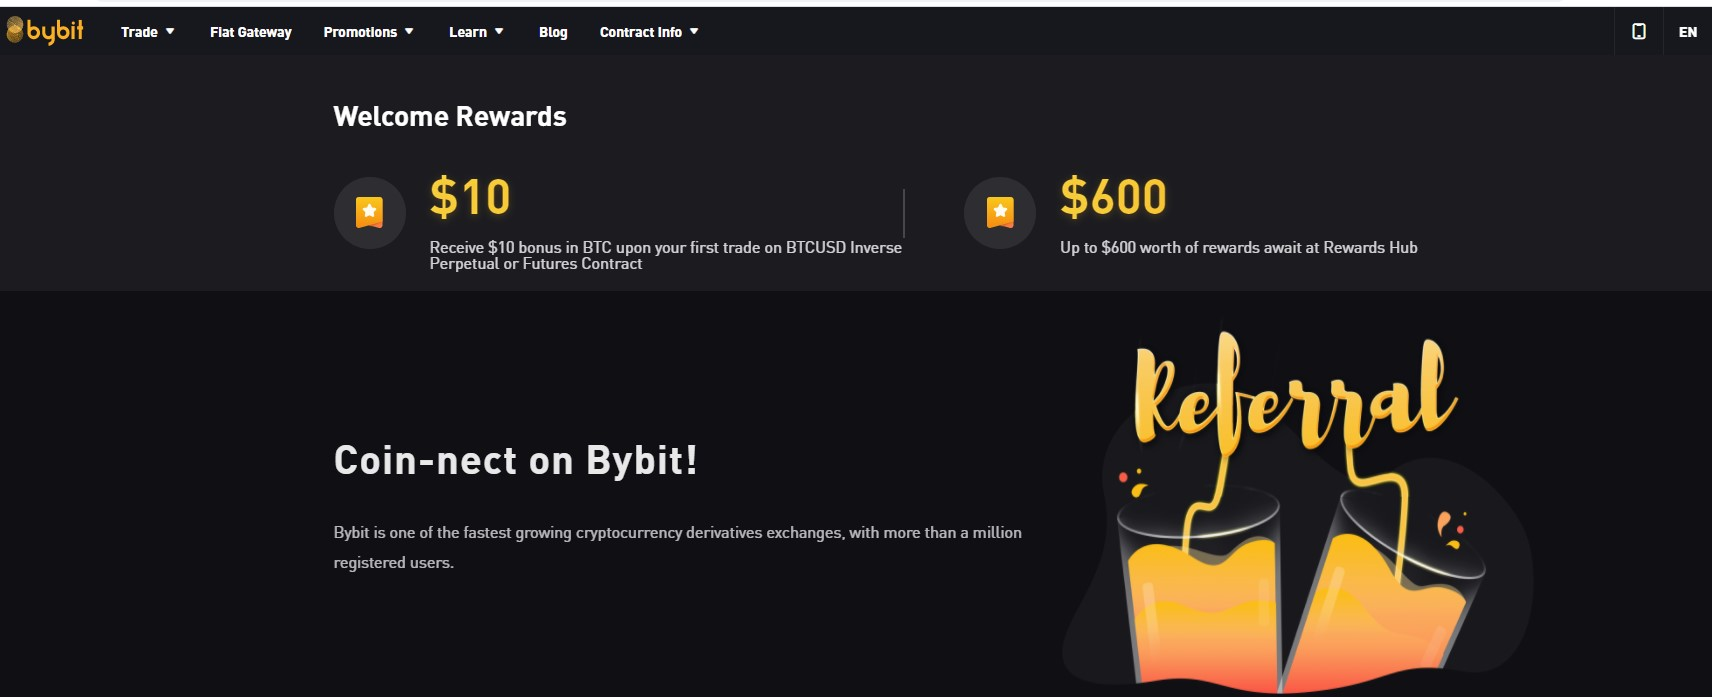 Bybit.com Review 2021 – Pros and Cons of Trading on Bybit